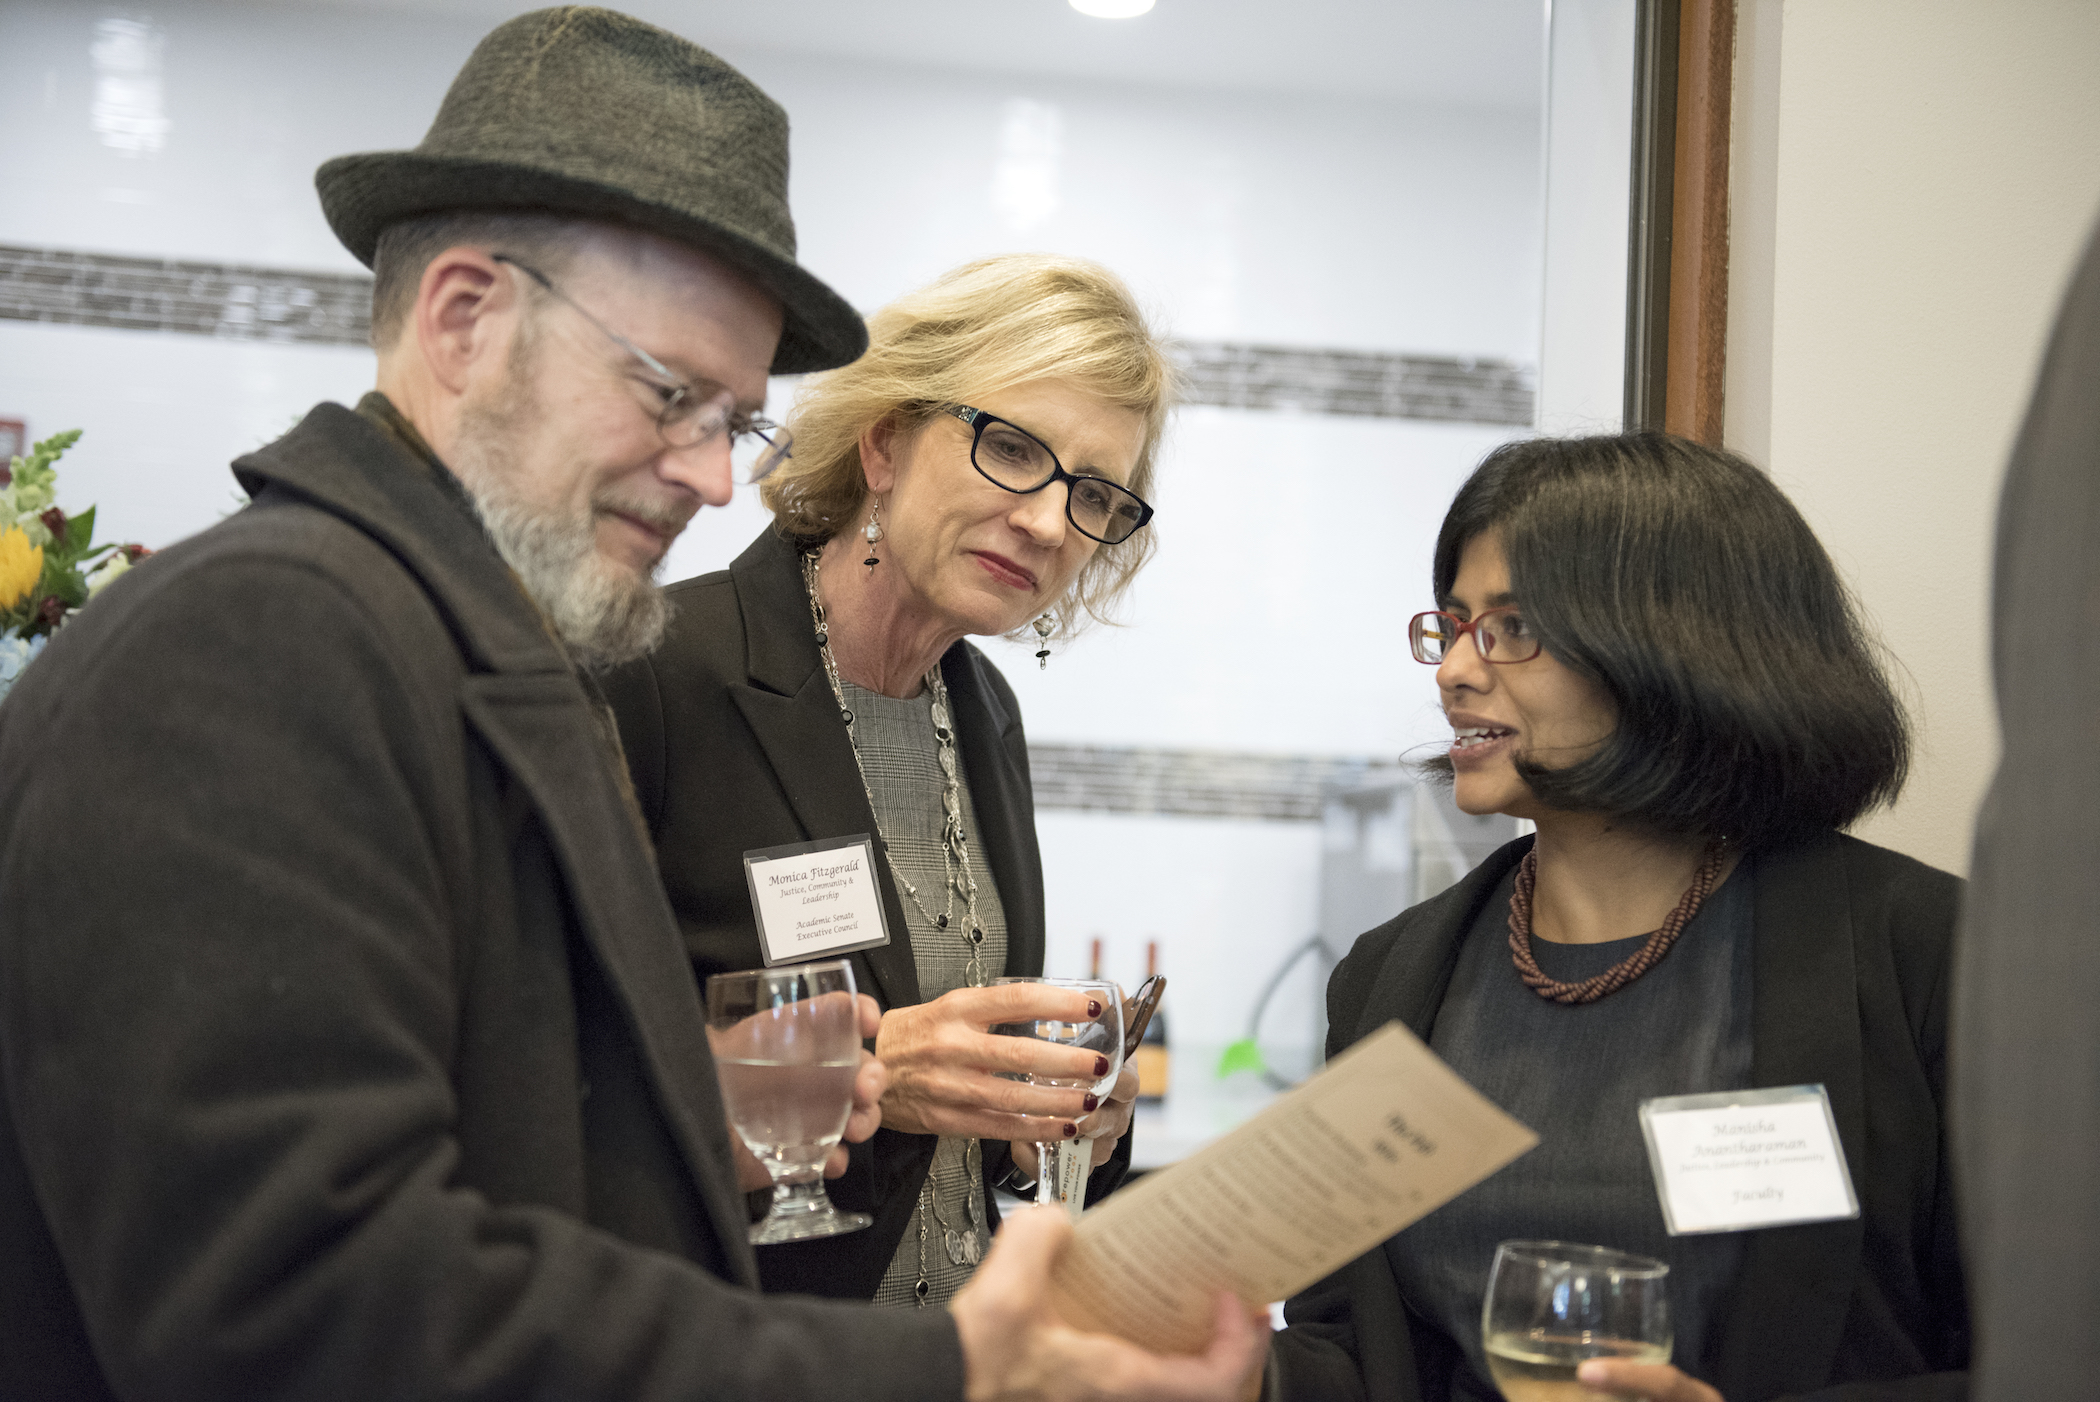 Board of Trustee member and History Professor Brother Charles Hilken with JCL Professors Monica Fitzgerald and Manisha Anantharaman.